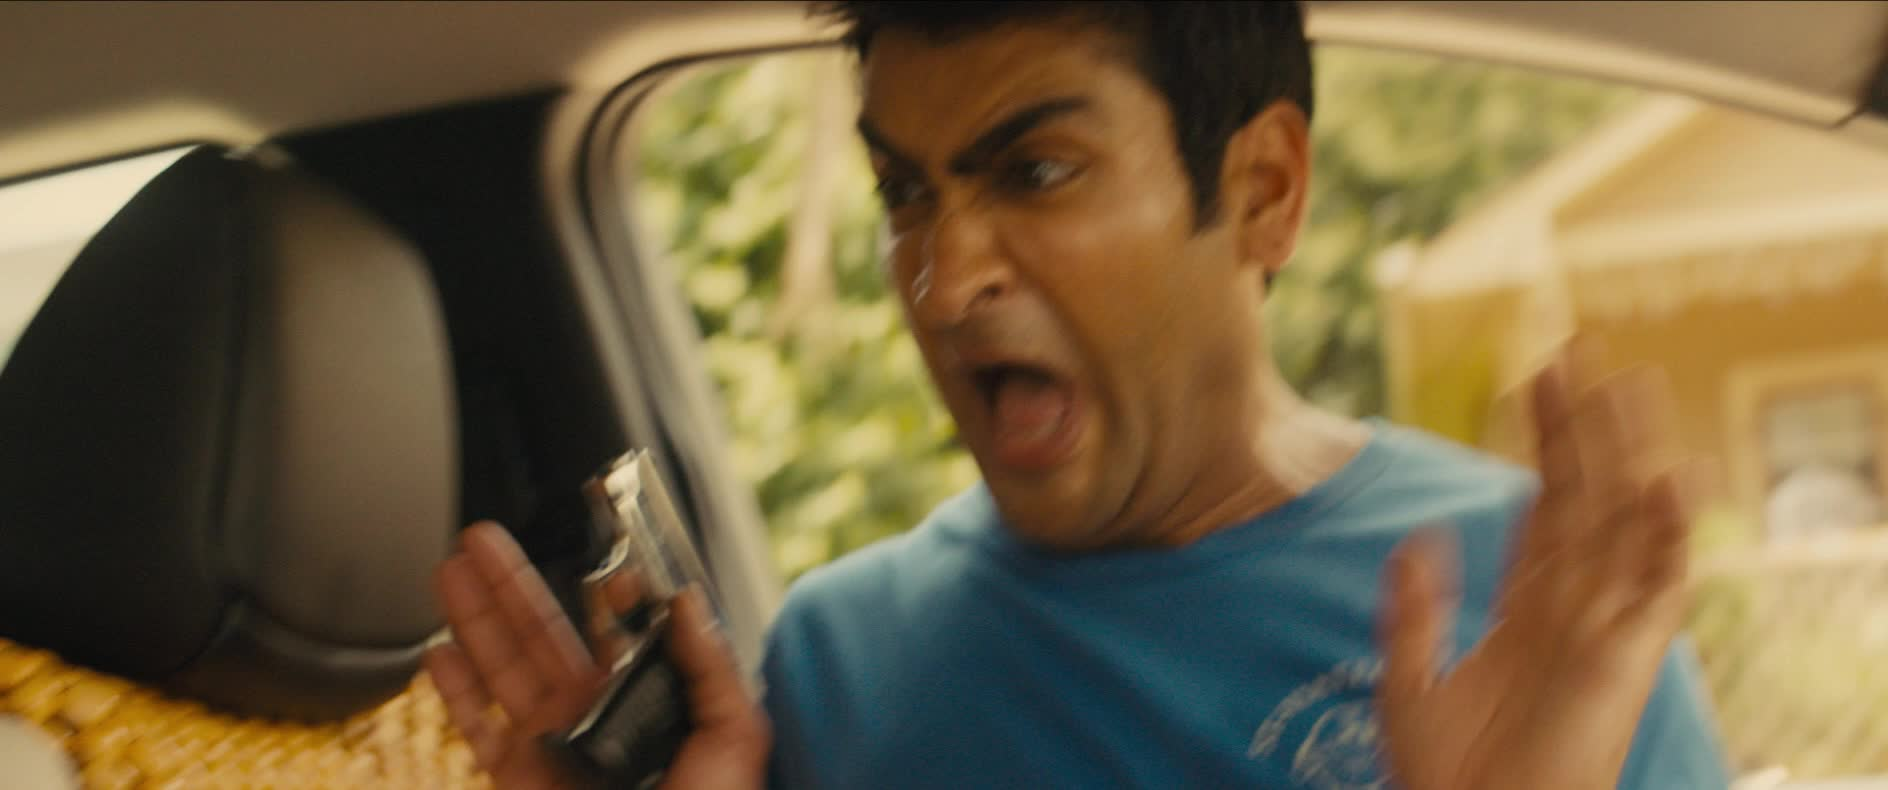 kumail nanjiani, oh my god, oh my gosh, omg, scared, scream, stuber, stuber movie, Kumail Nanjiani Screaming GIFs